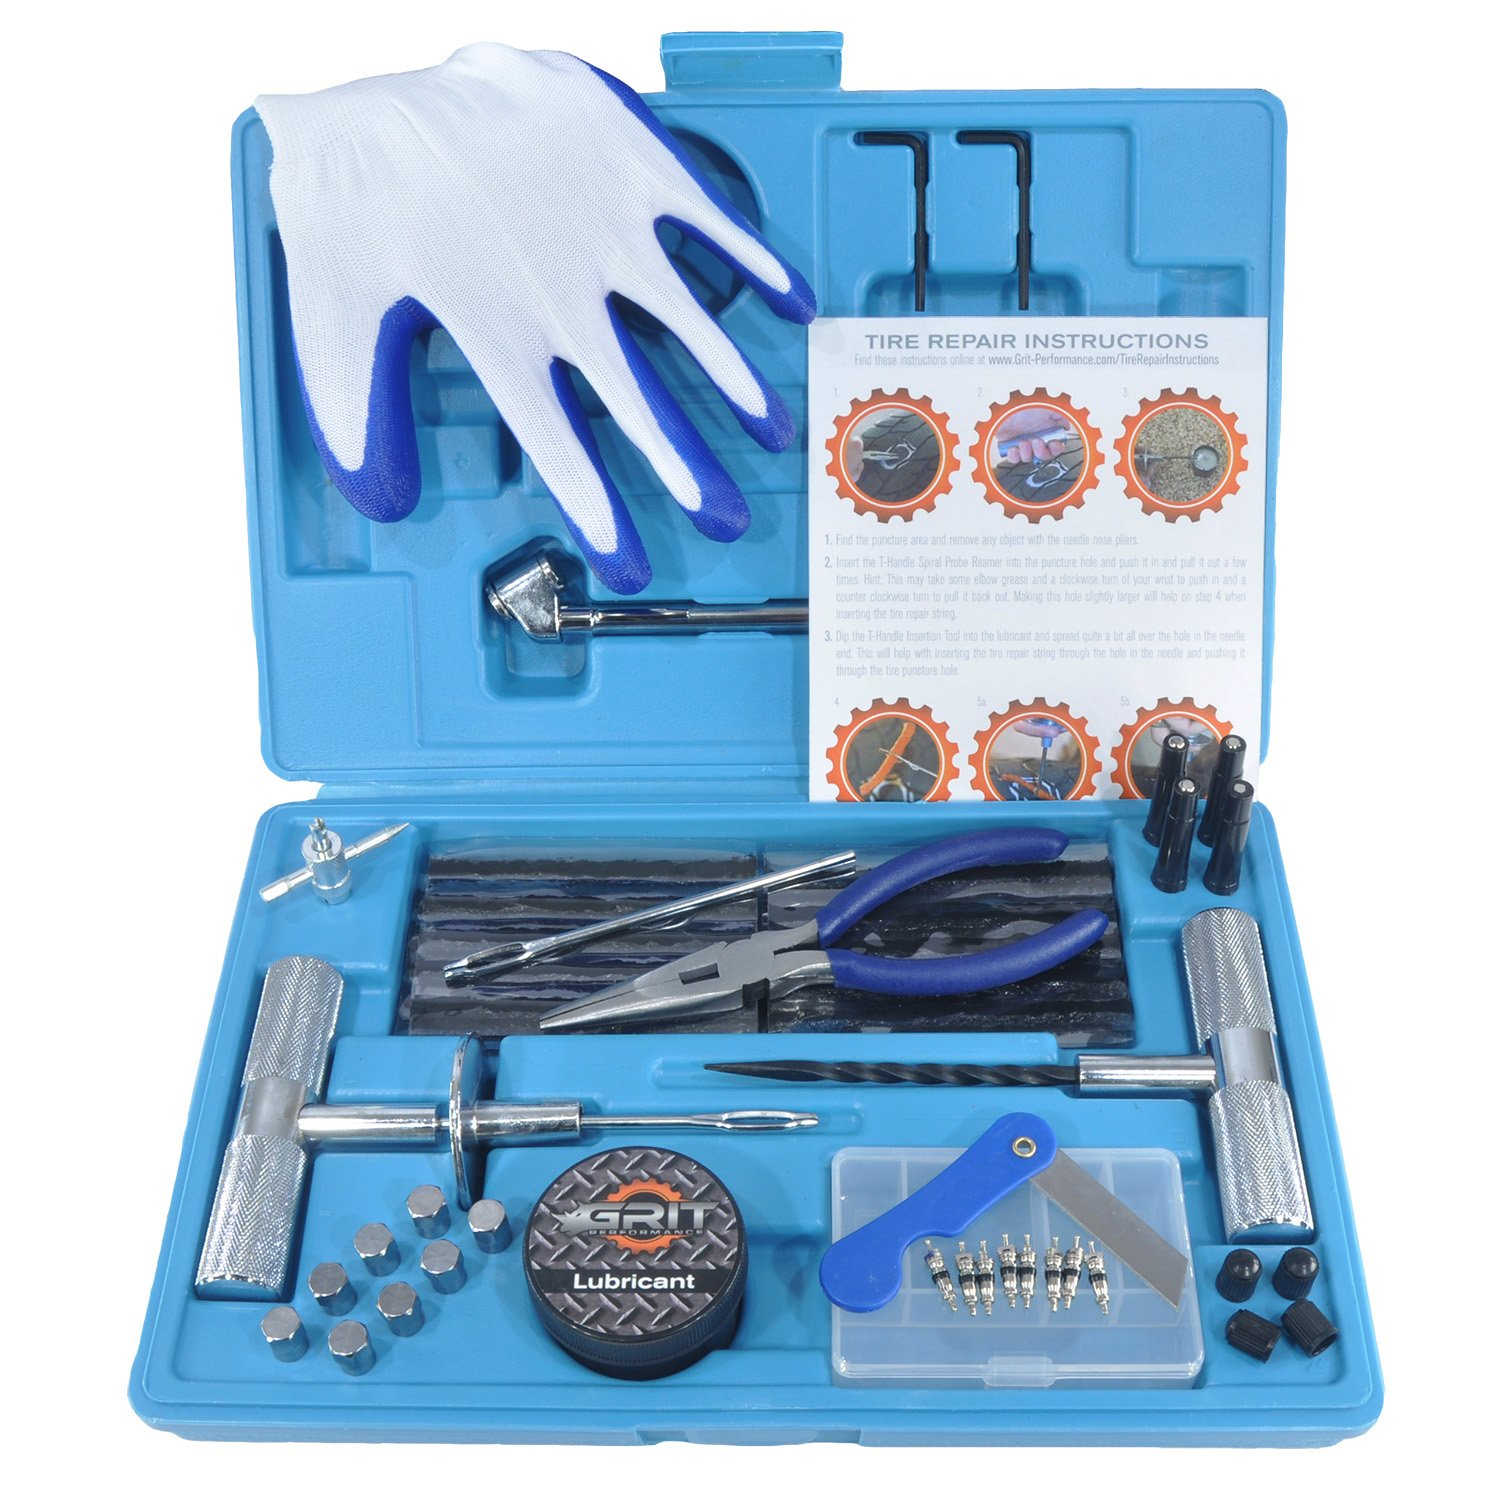 [71 Piece] Heavy Duty Tire Repair Kit w/ Gloves | Universal Tubeless Flat Tire Plug Kit for Puncture Repair | Ideal for Cars, Trucks, SUVs, ATVs, Motorcycles, Lawn Mowers, Tractors, Motorhomes by Grit Performance